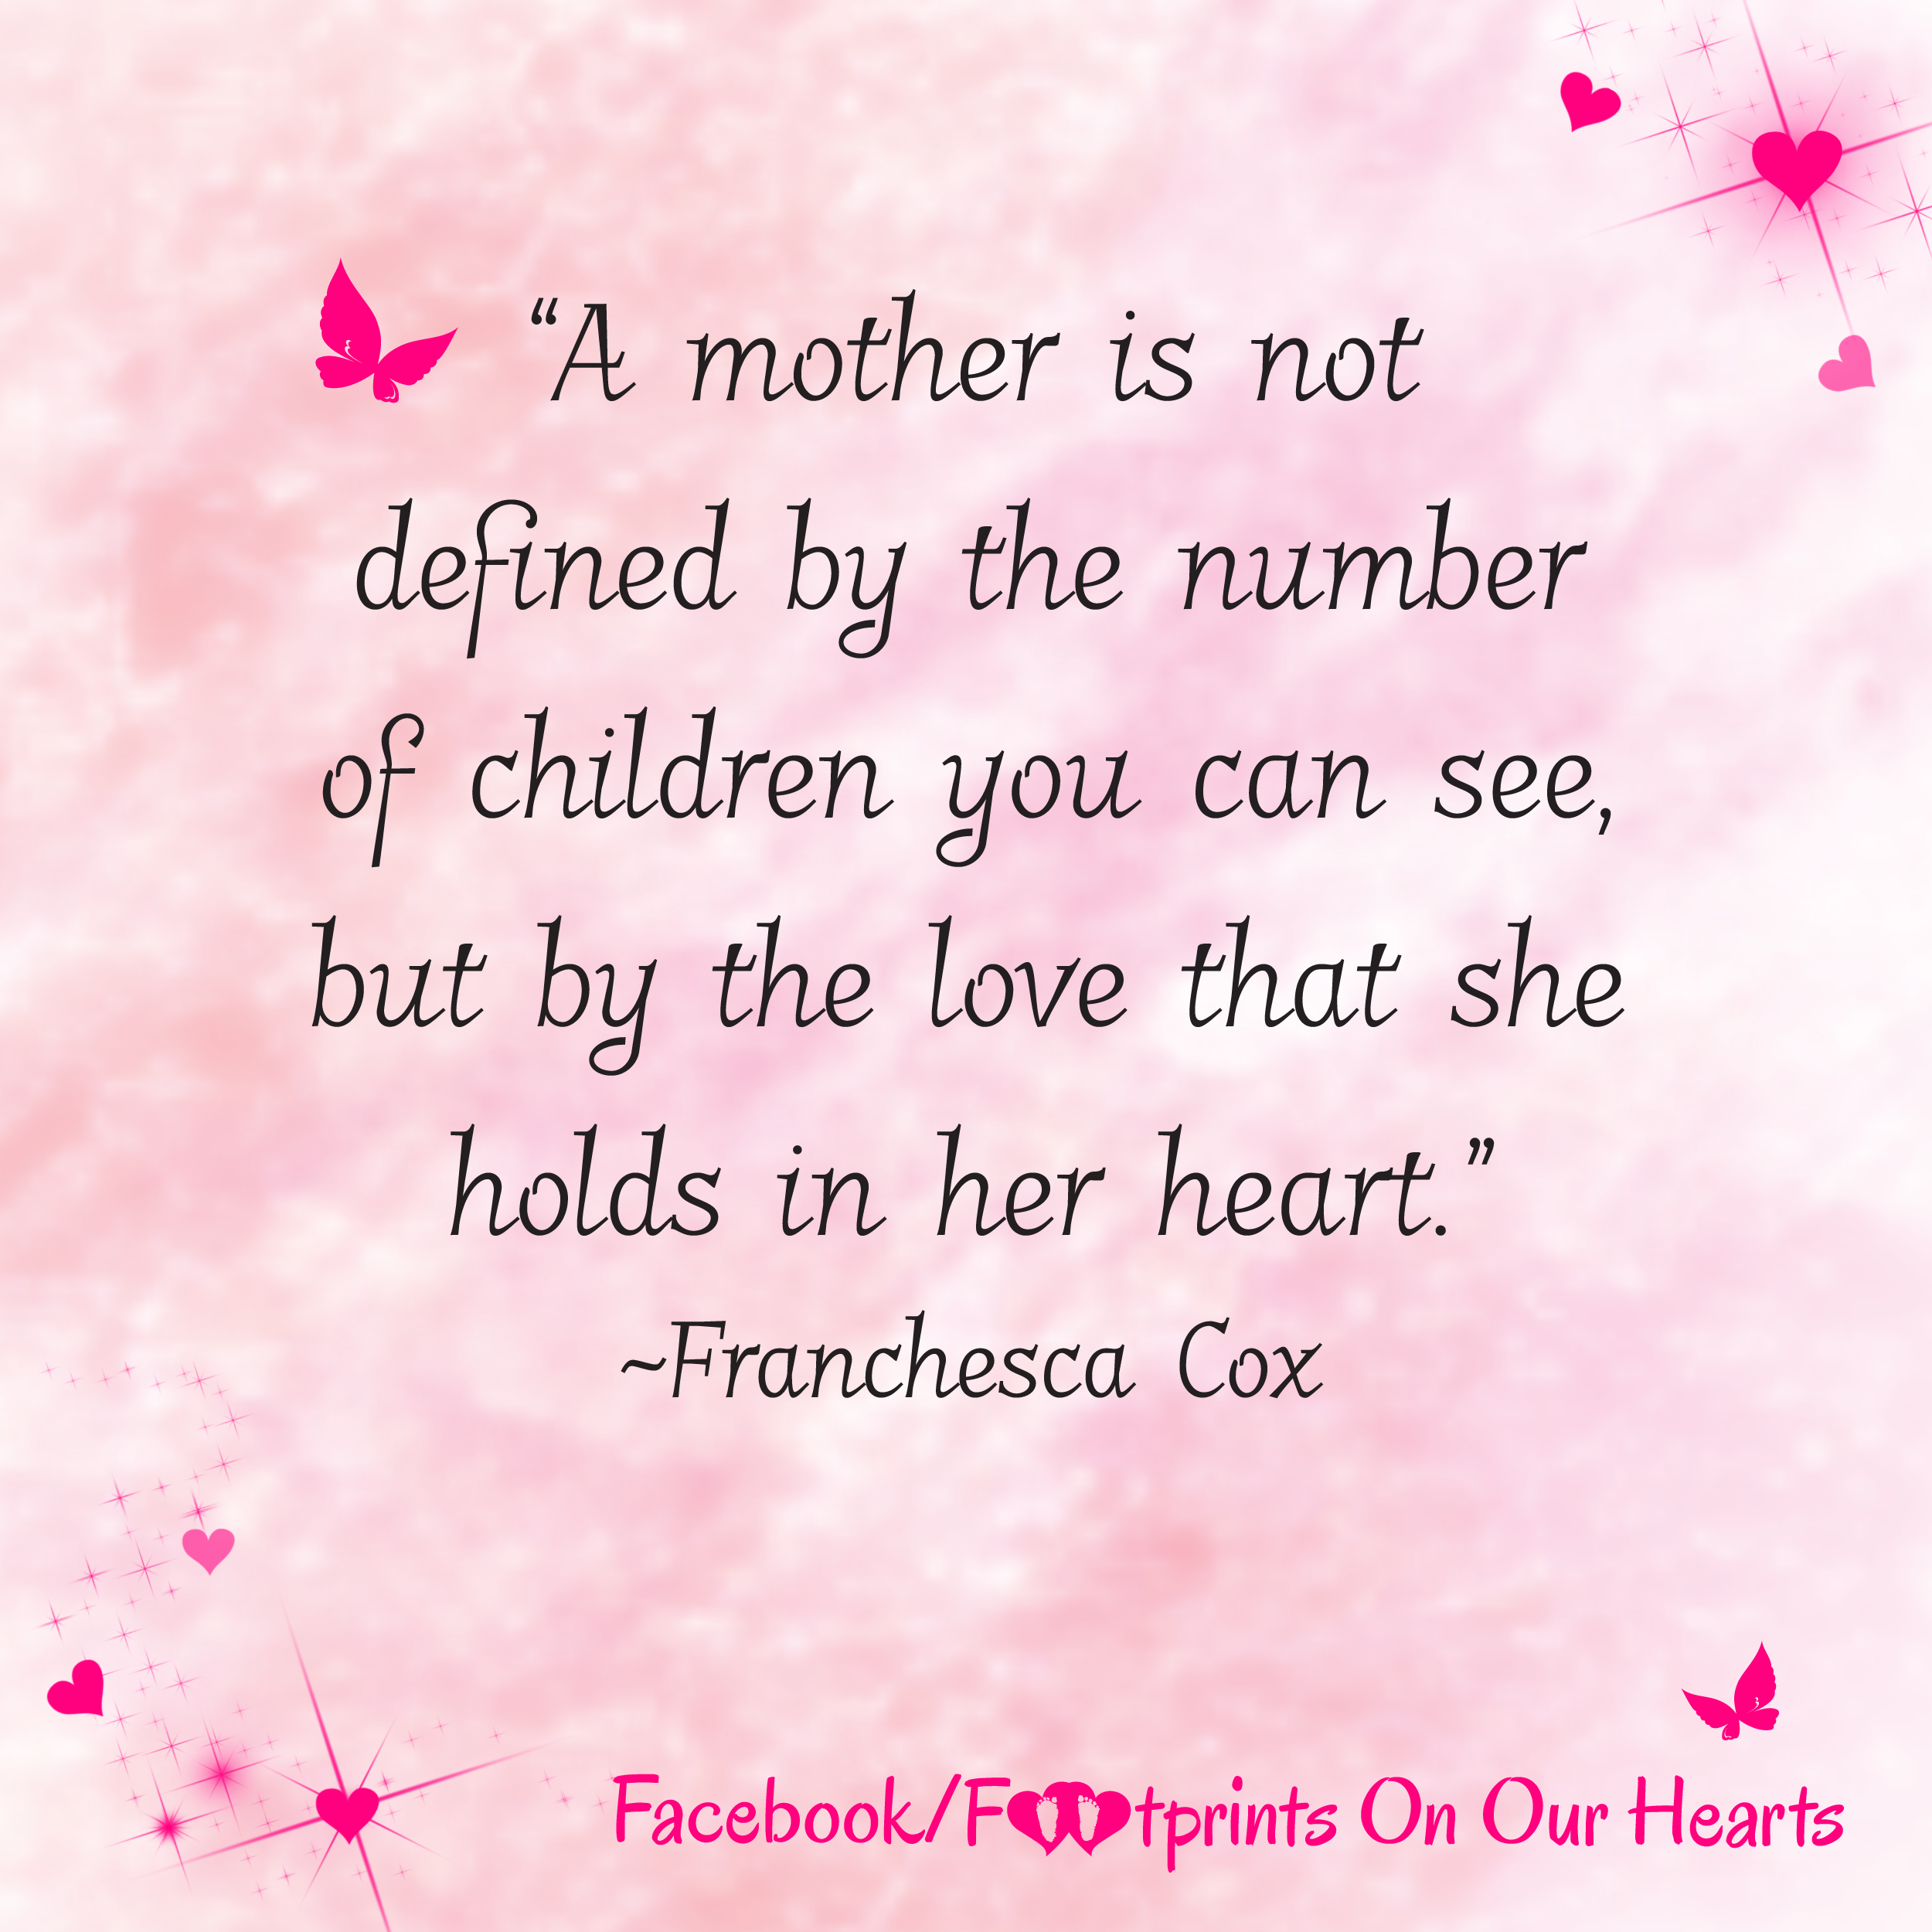 """A mother is not defined by the number of children you can see but by the love that she holds in her heart"